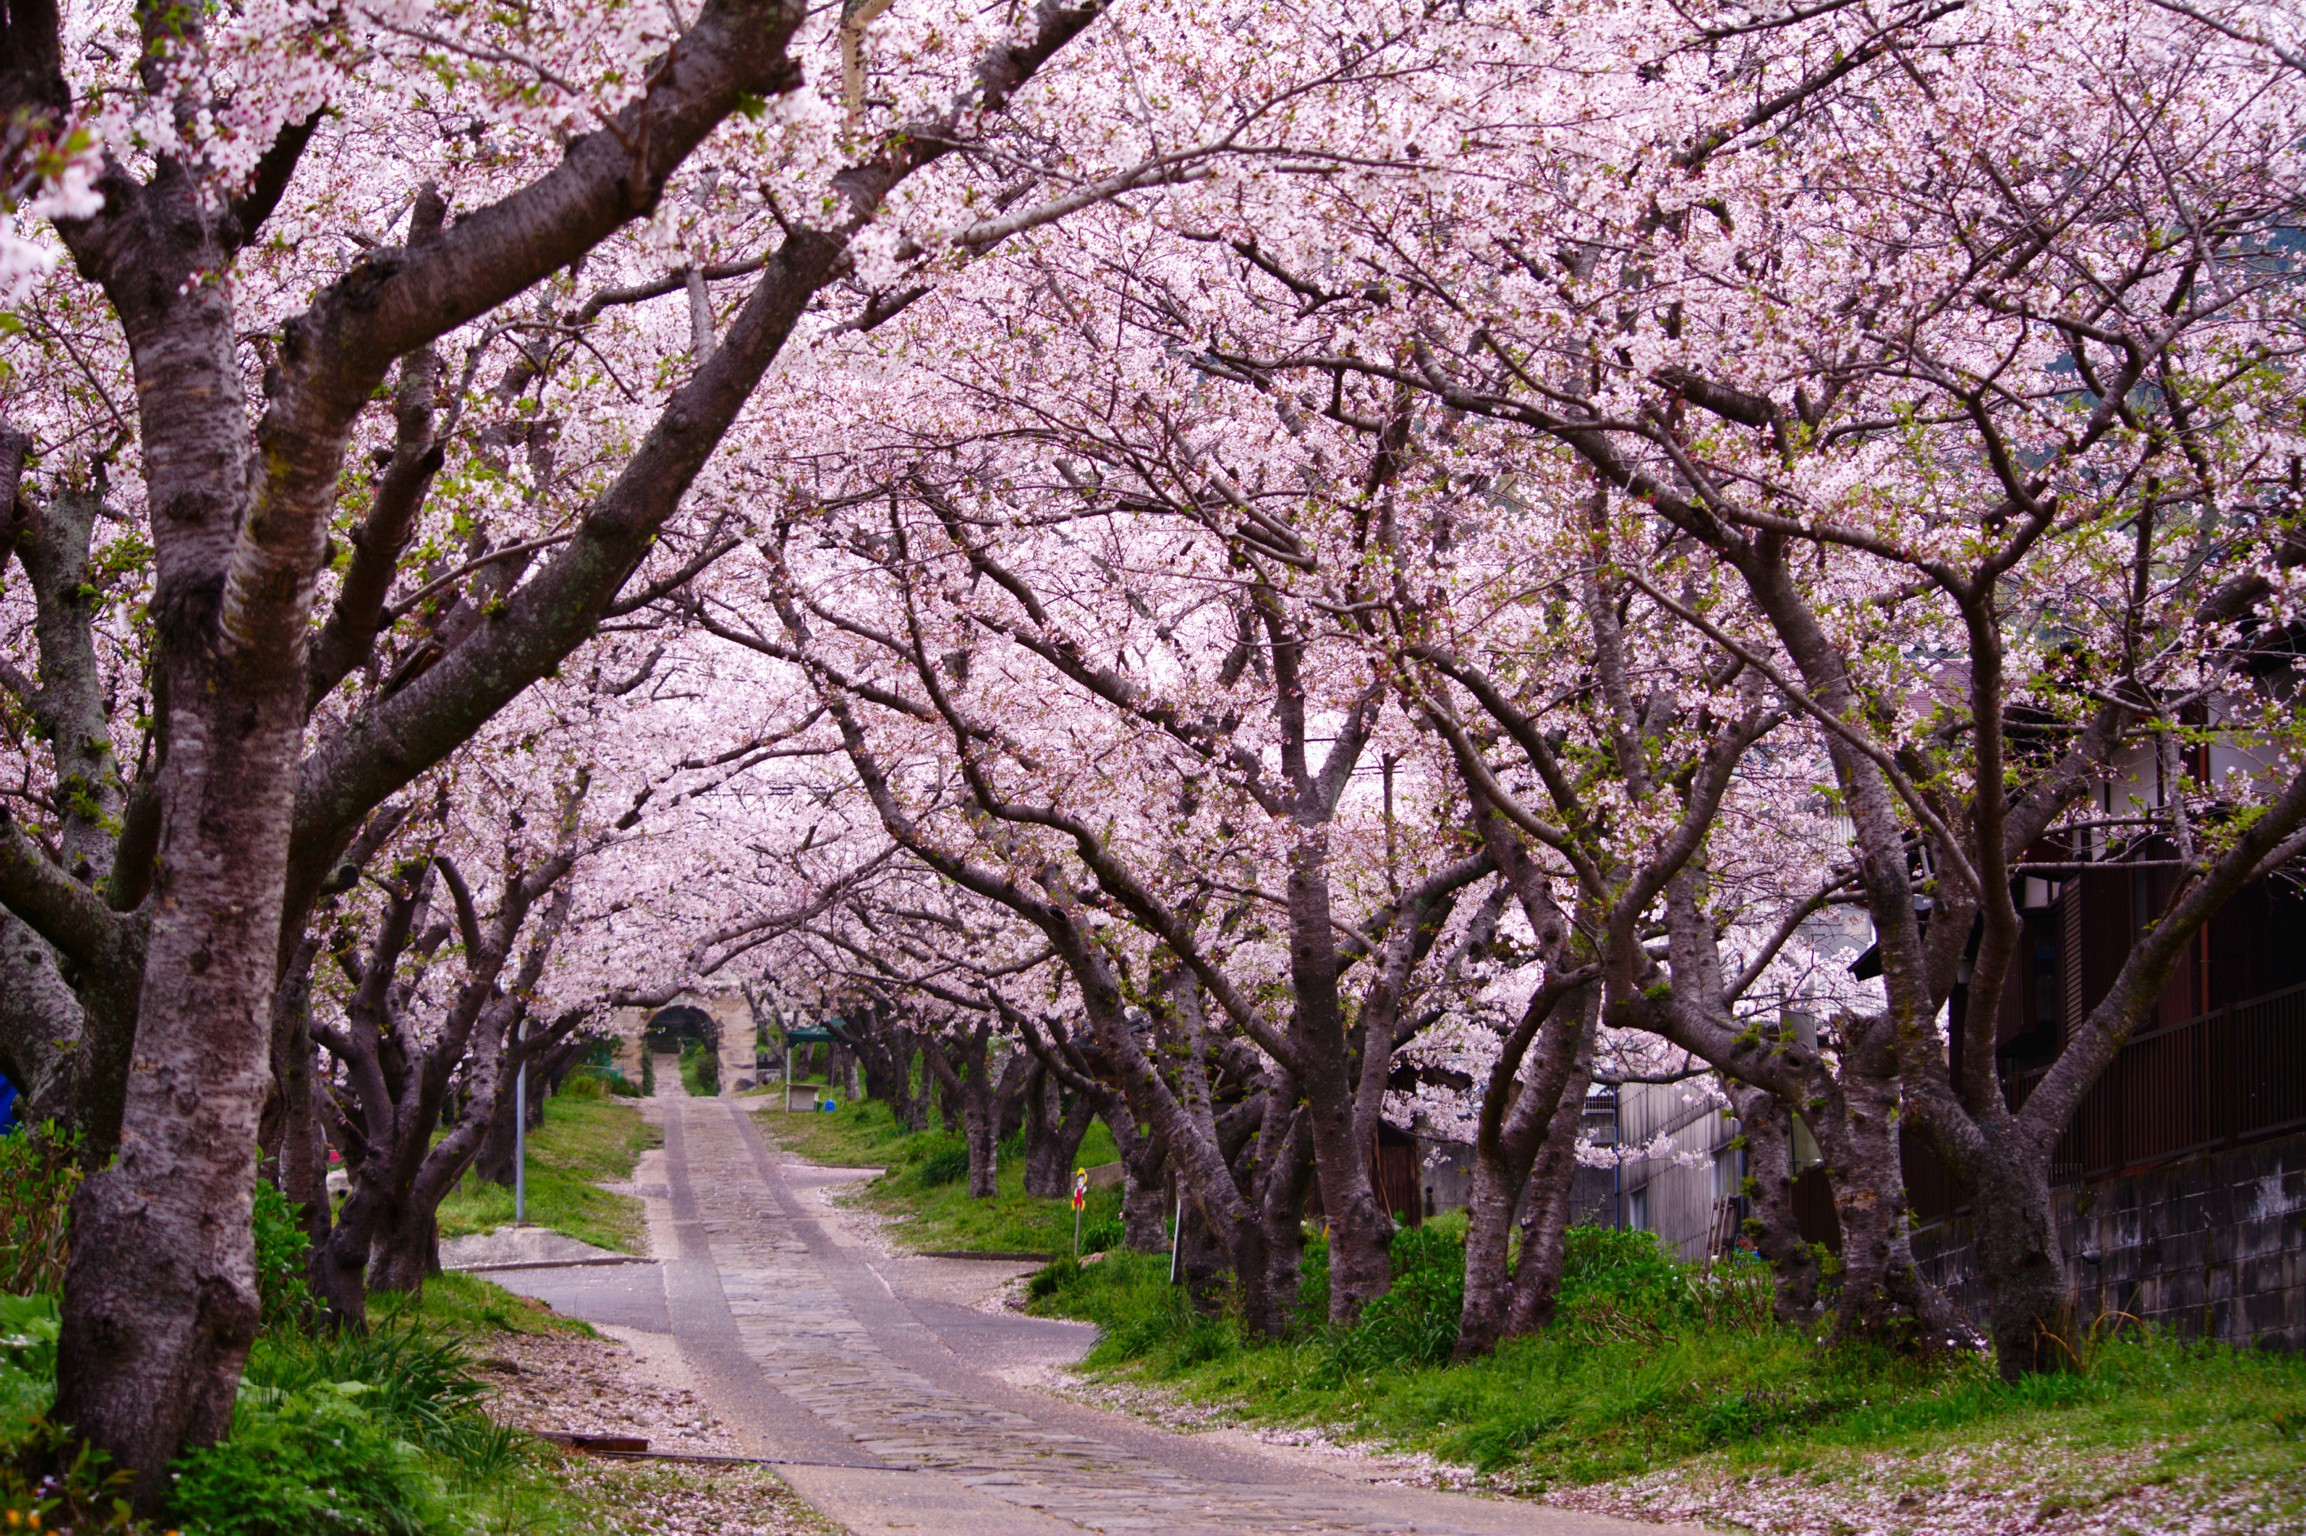 A road lined with blossoming trees